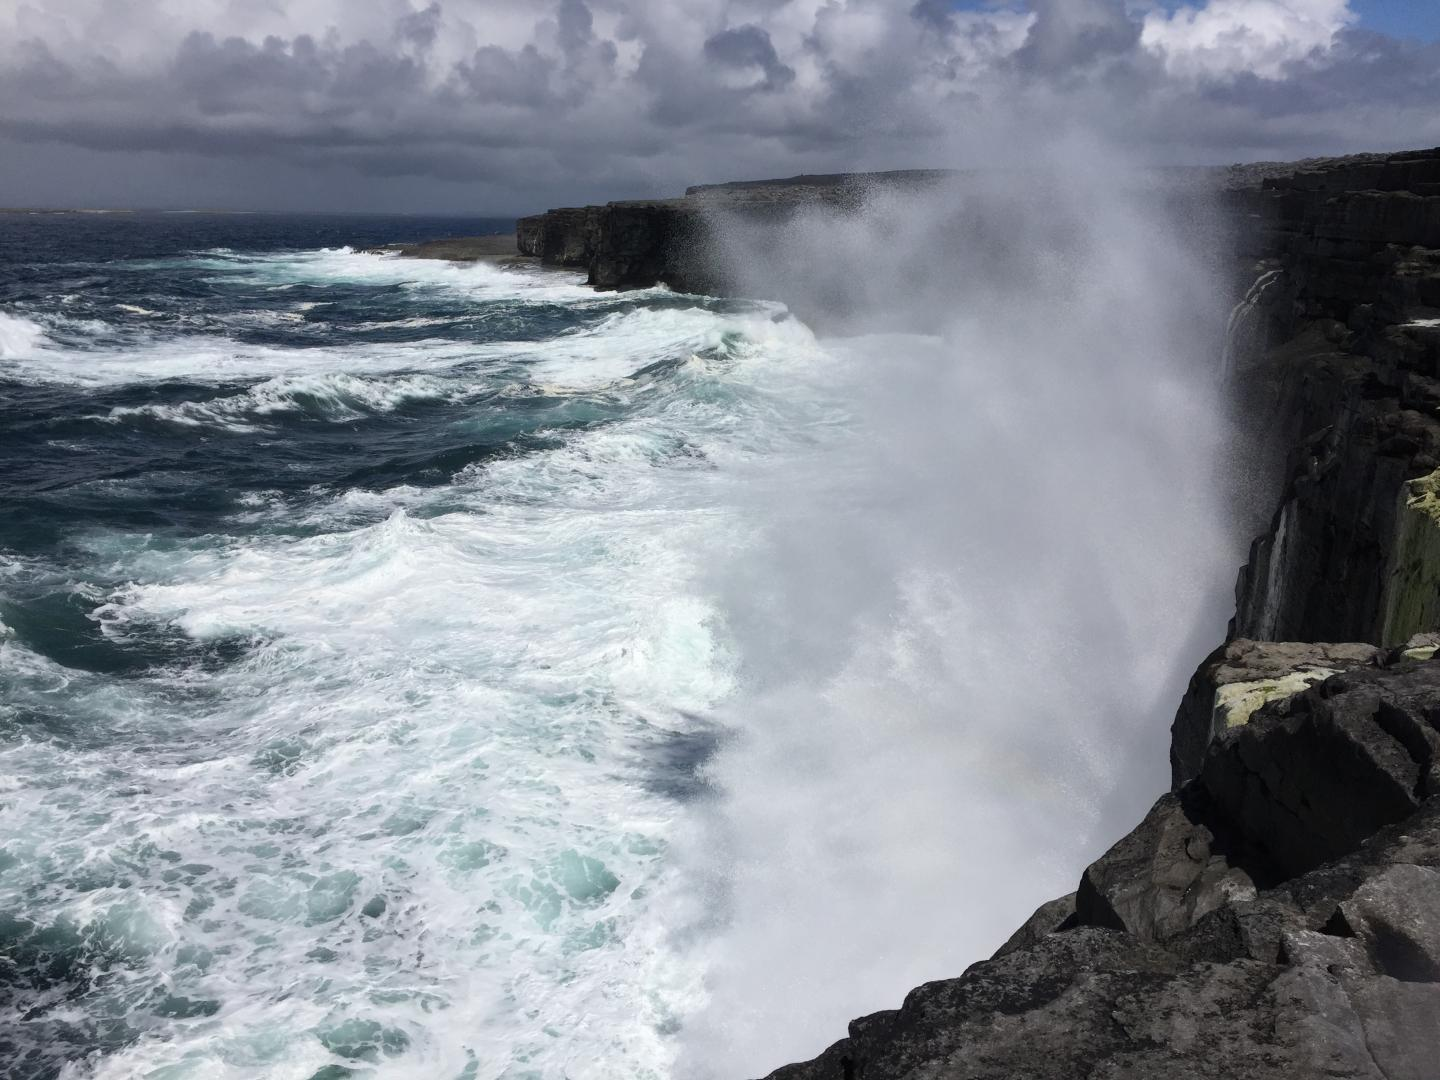 Research on large storm waves could help lessen their impact on coasts